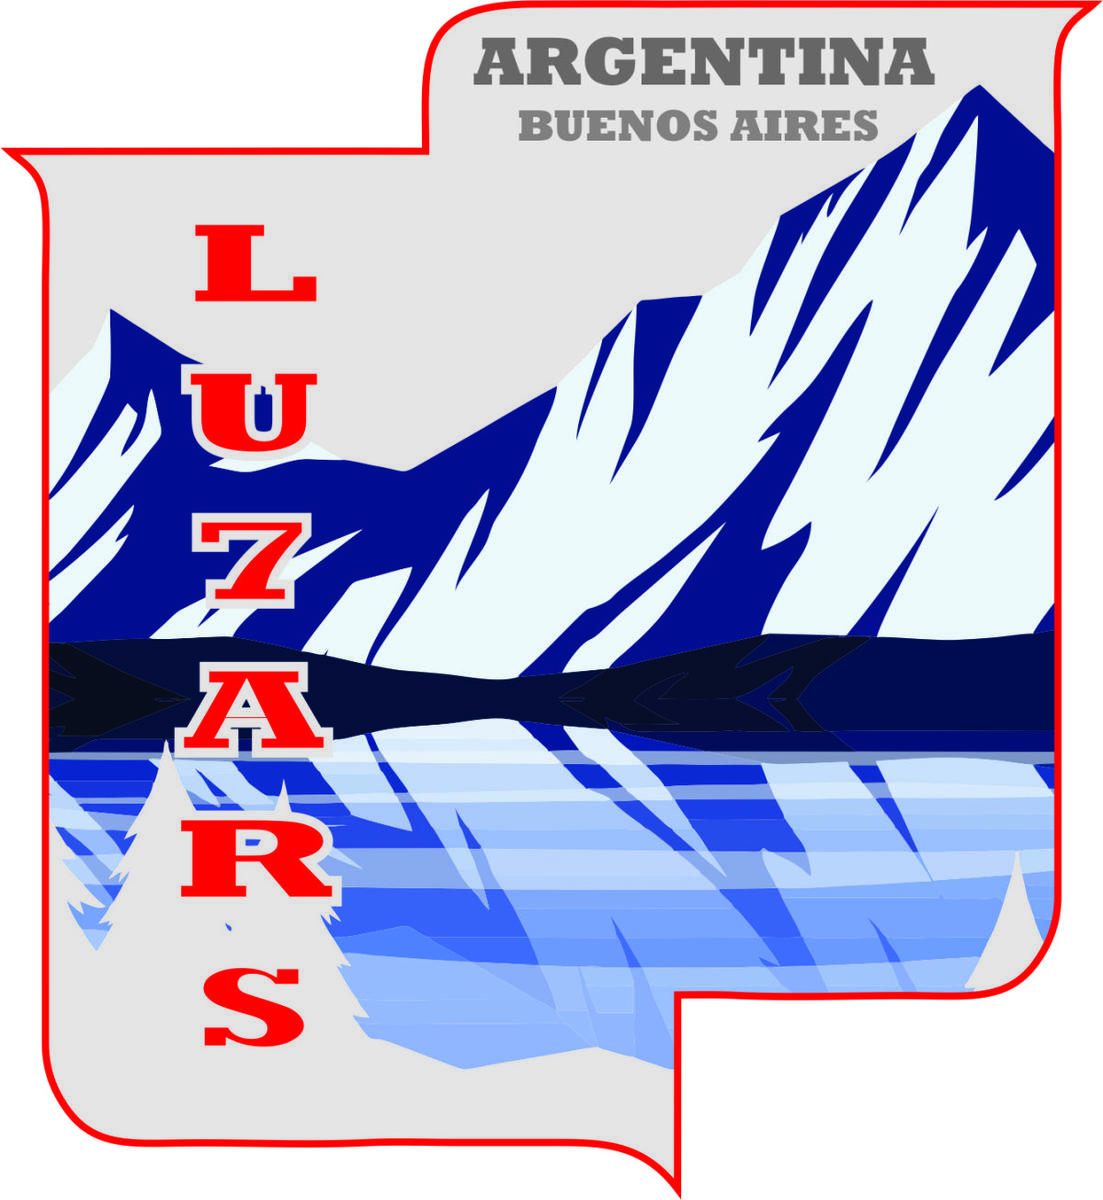 Primary Image for LU7ARS